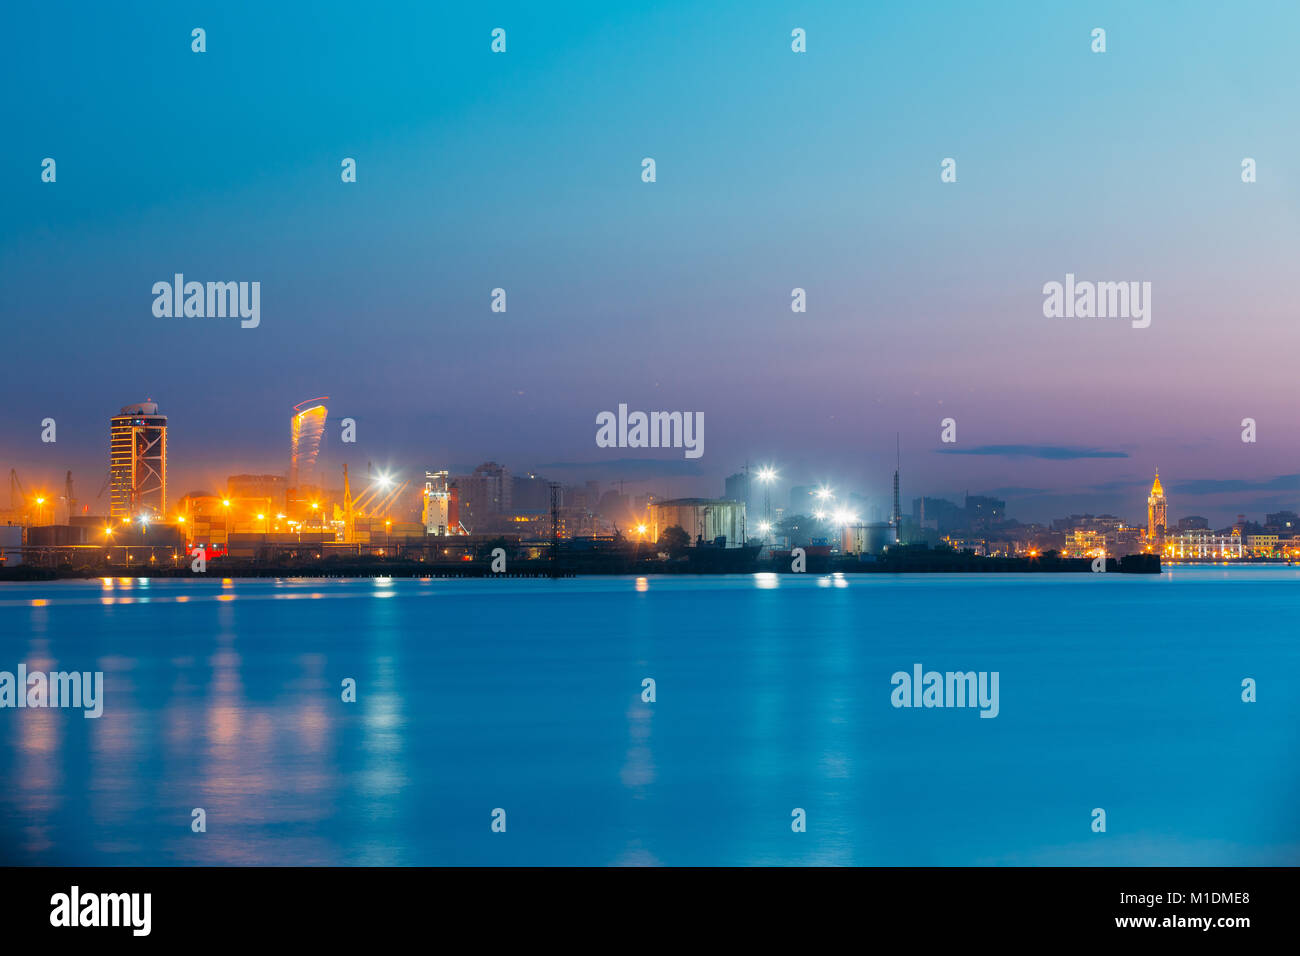 Batumi, Adjara, Georgia. Port Dock On Sunny Evening Or Night At Illuminations Lights - Stock Image